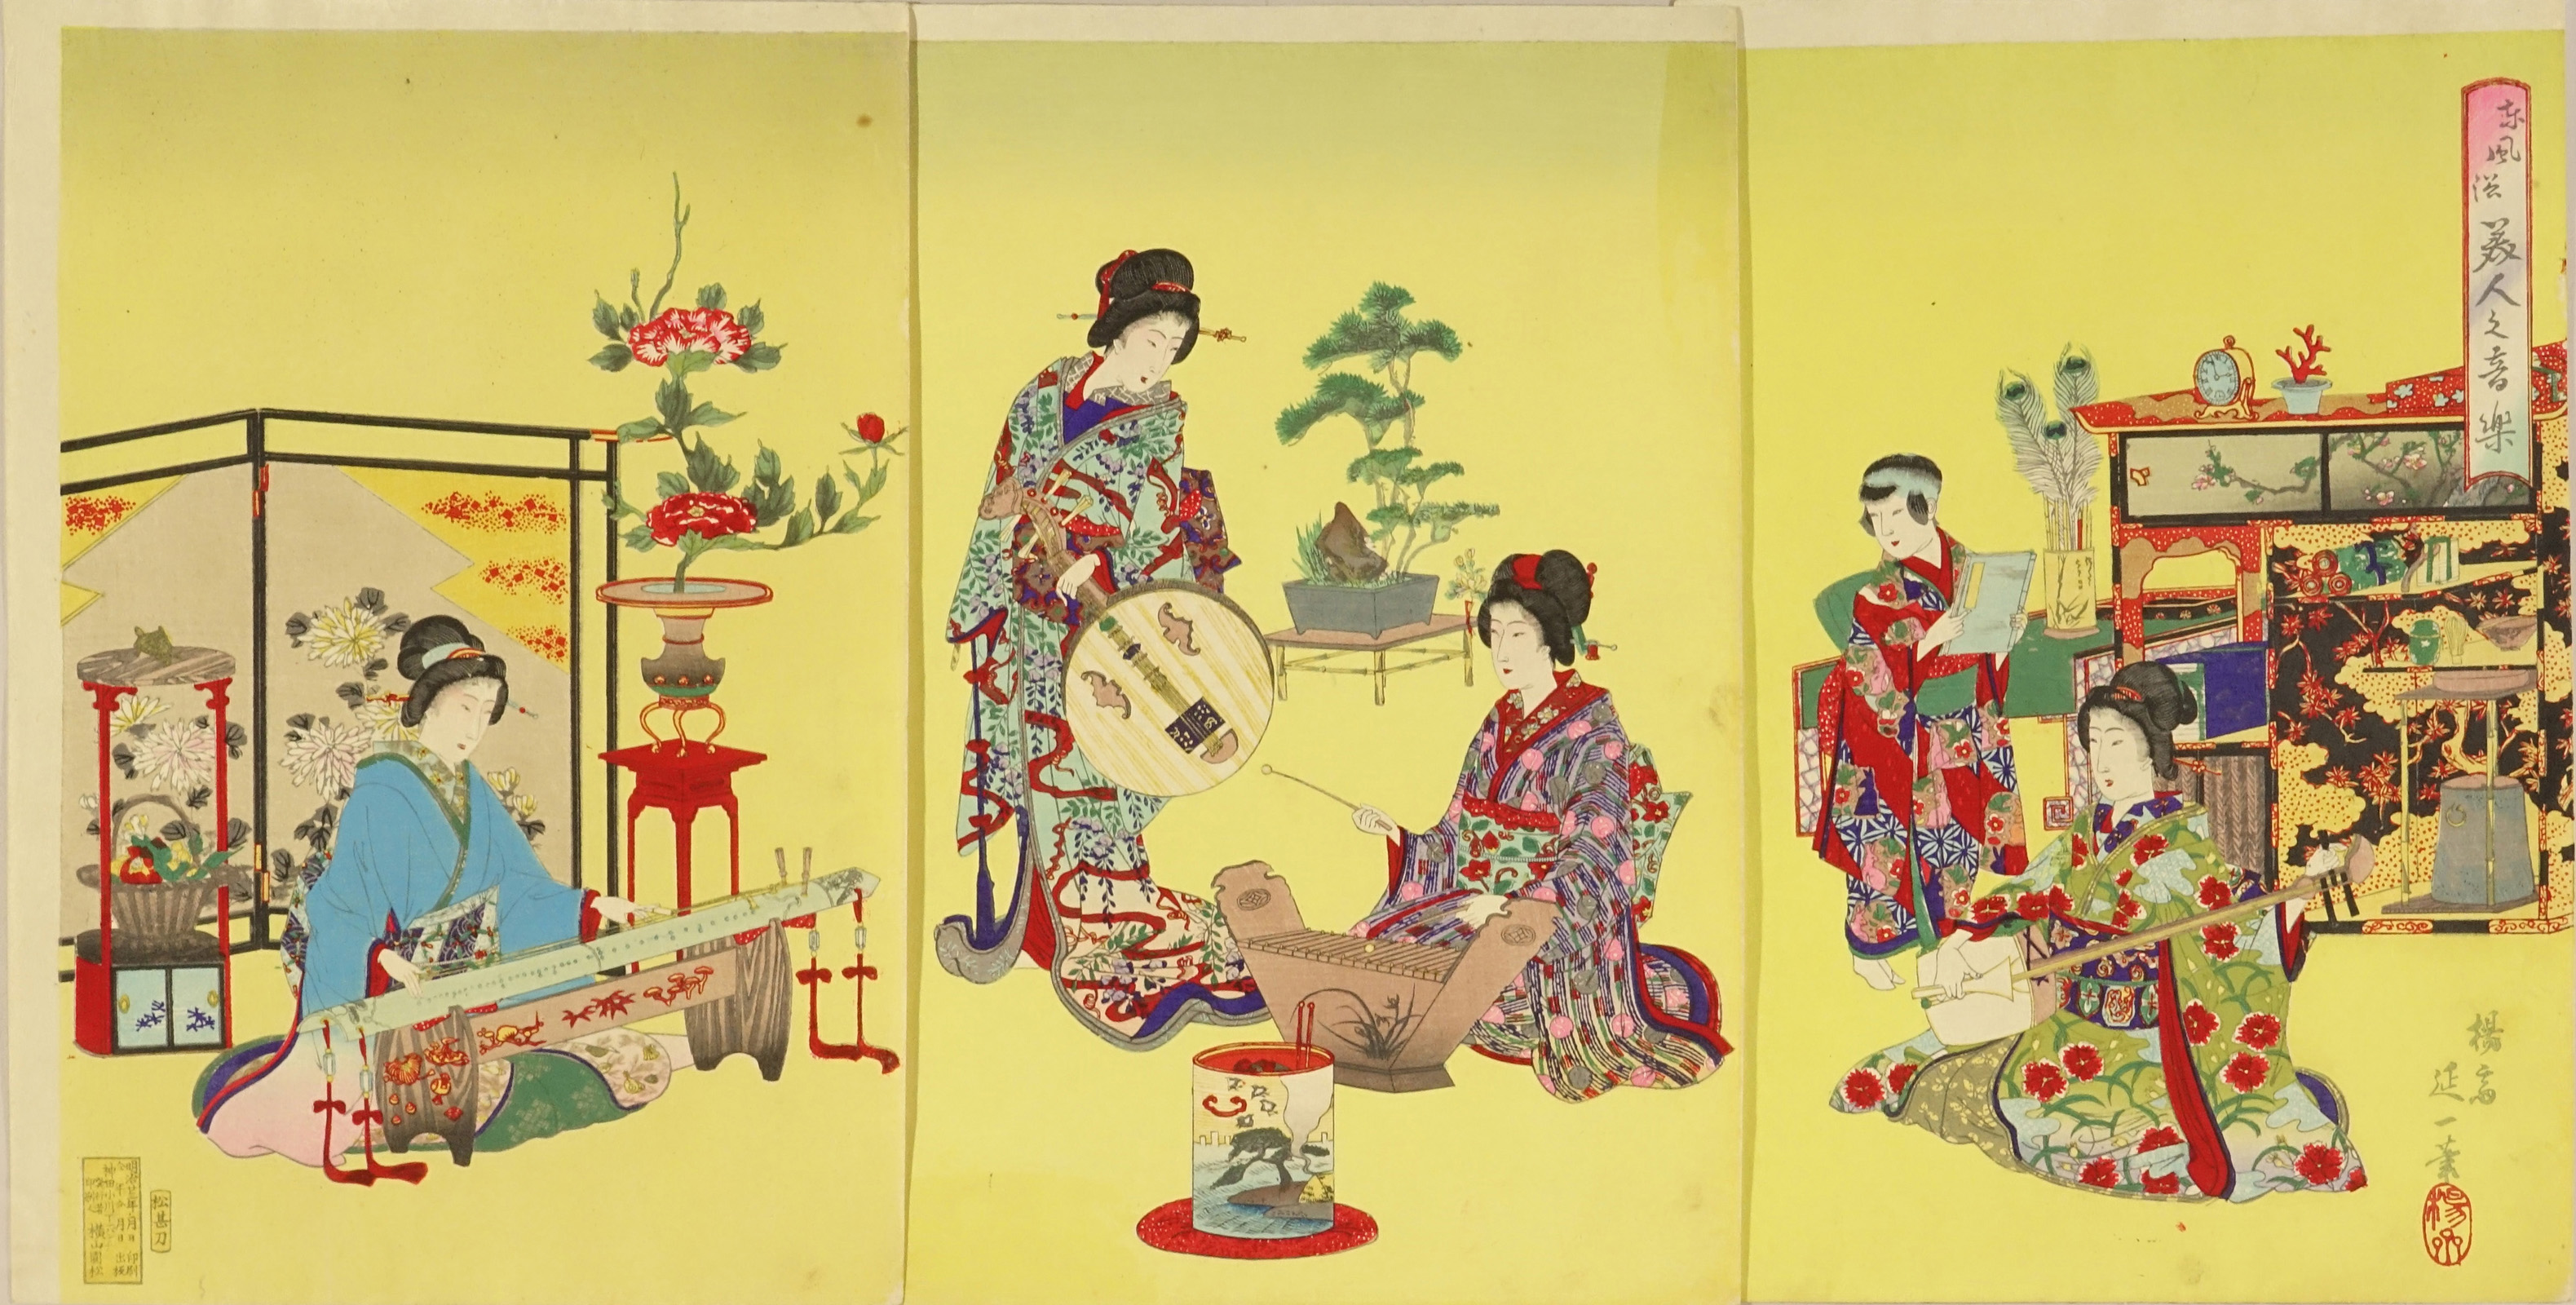 NOBUKAZU <i>Bijin no ongak</i>u (Beauties playing music), from <i>Azuma fuzoku</i> (Daily life of the eastern capital)